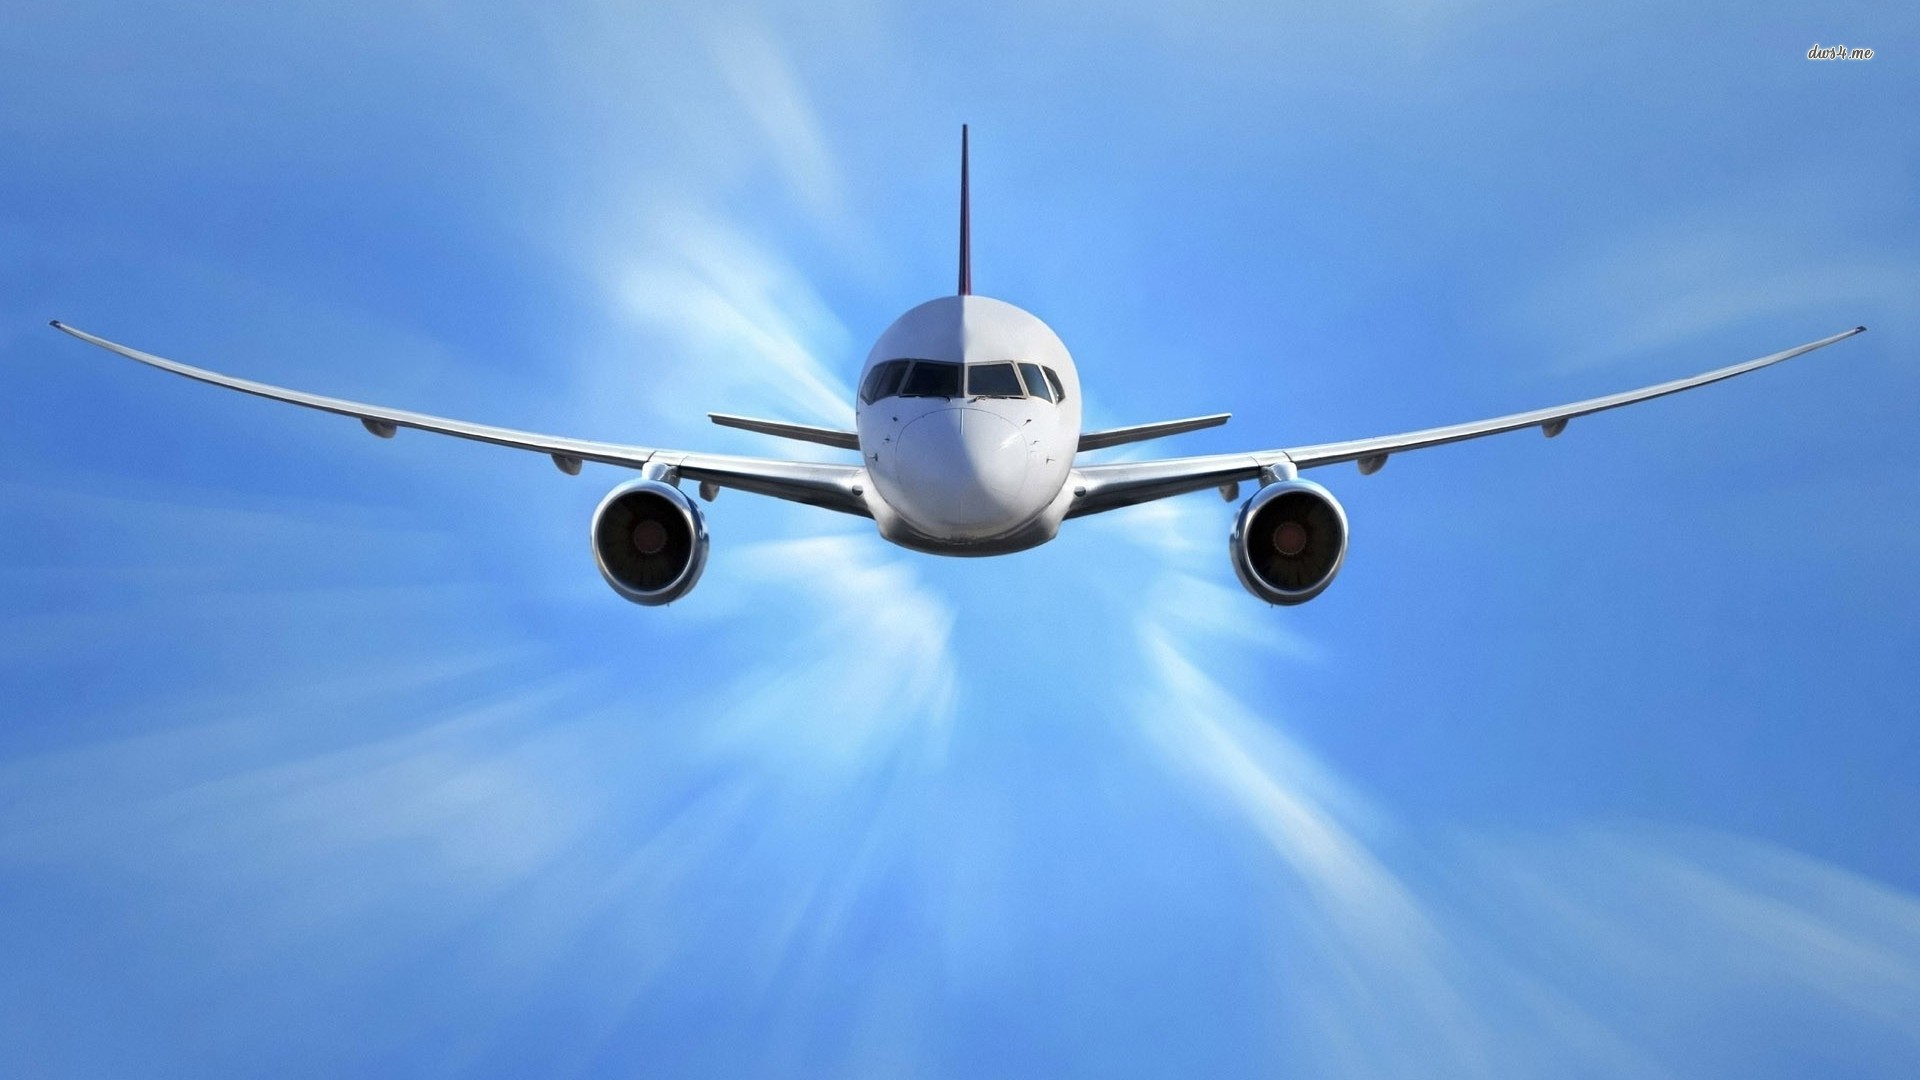 55 Hd Airplane Wallpapers Backgrounds For Free Download